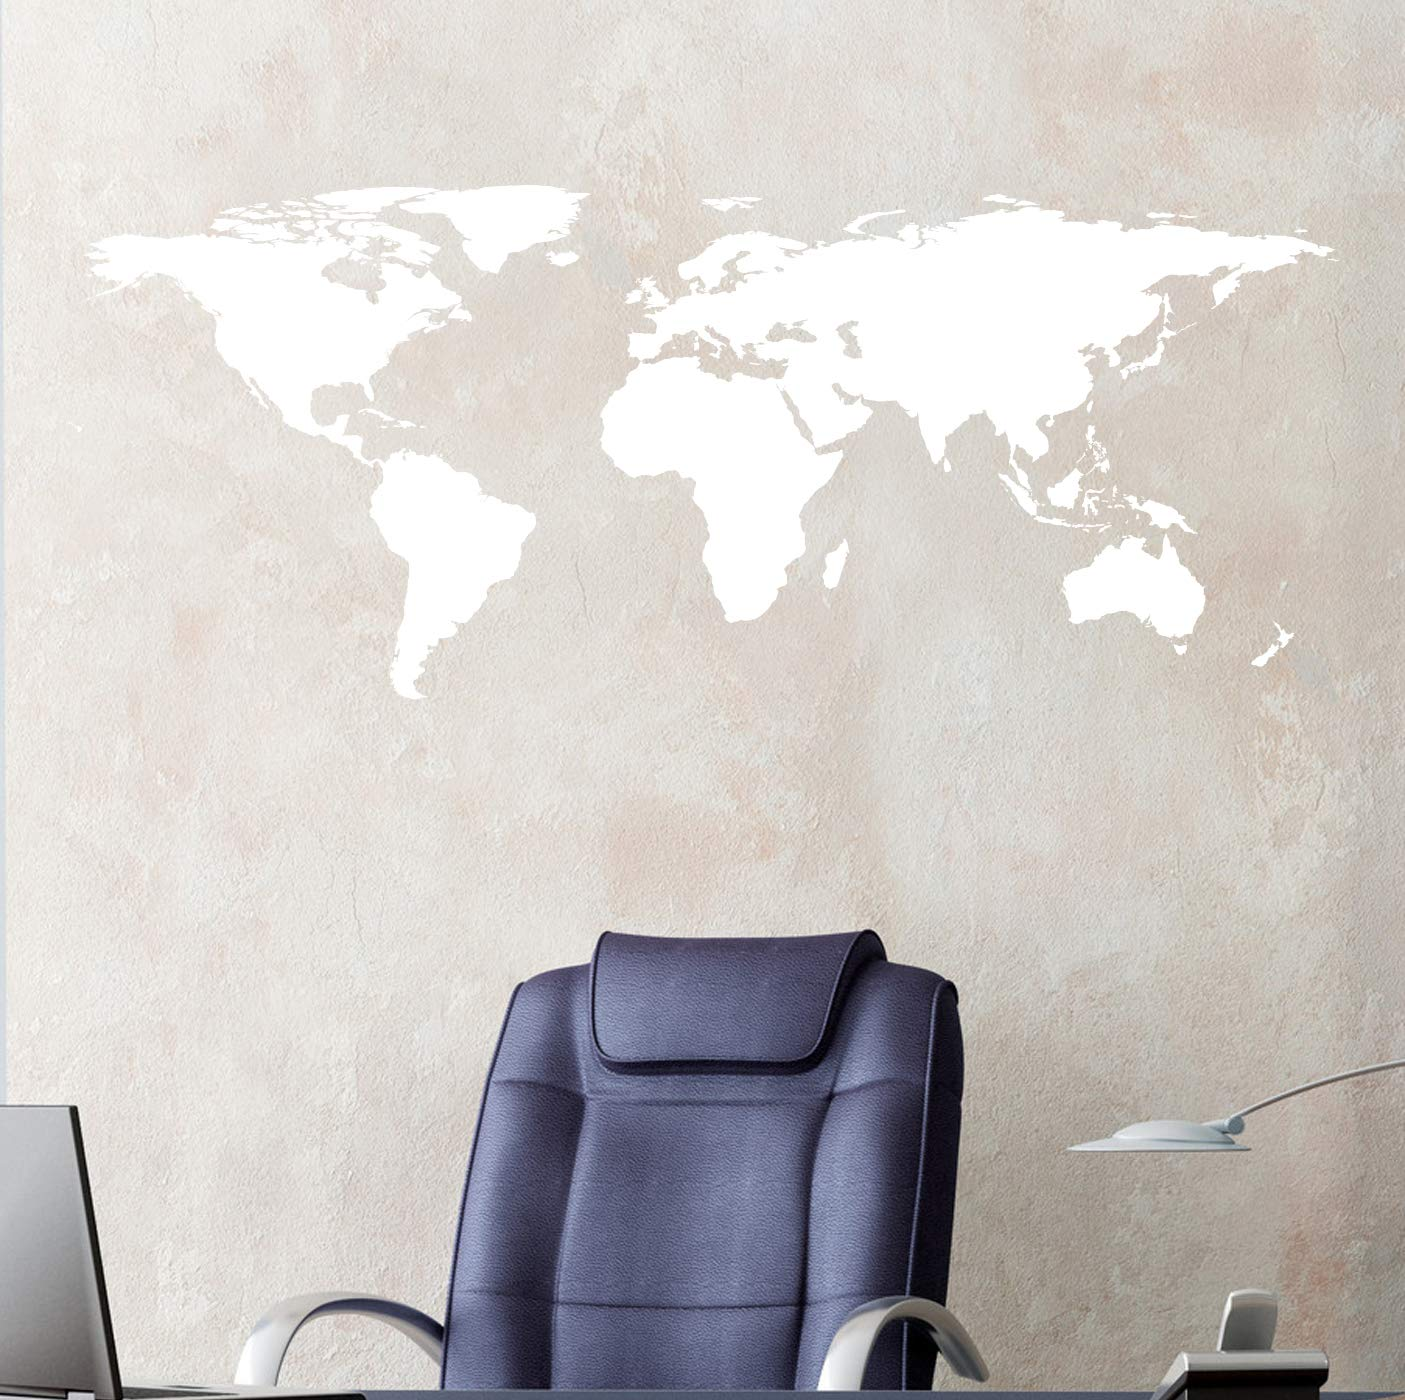 Stickerbrand white world map wall decal sticker home decor vinyl stickerbrand white world map wall decal sticker home decor vinyl wall art large 21in x 51in gumiabroncs Image collections